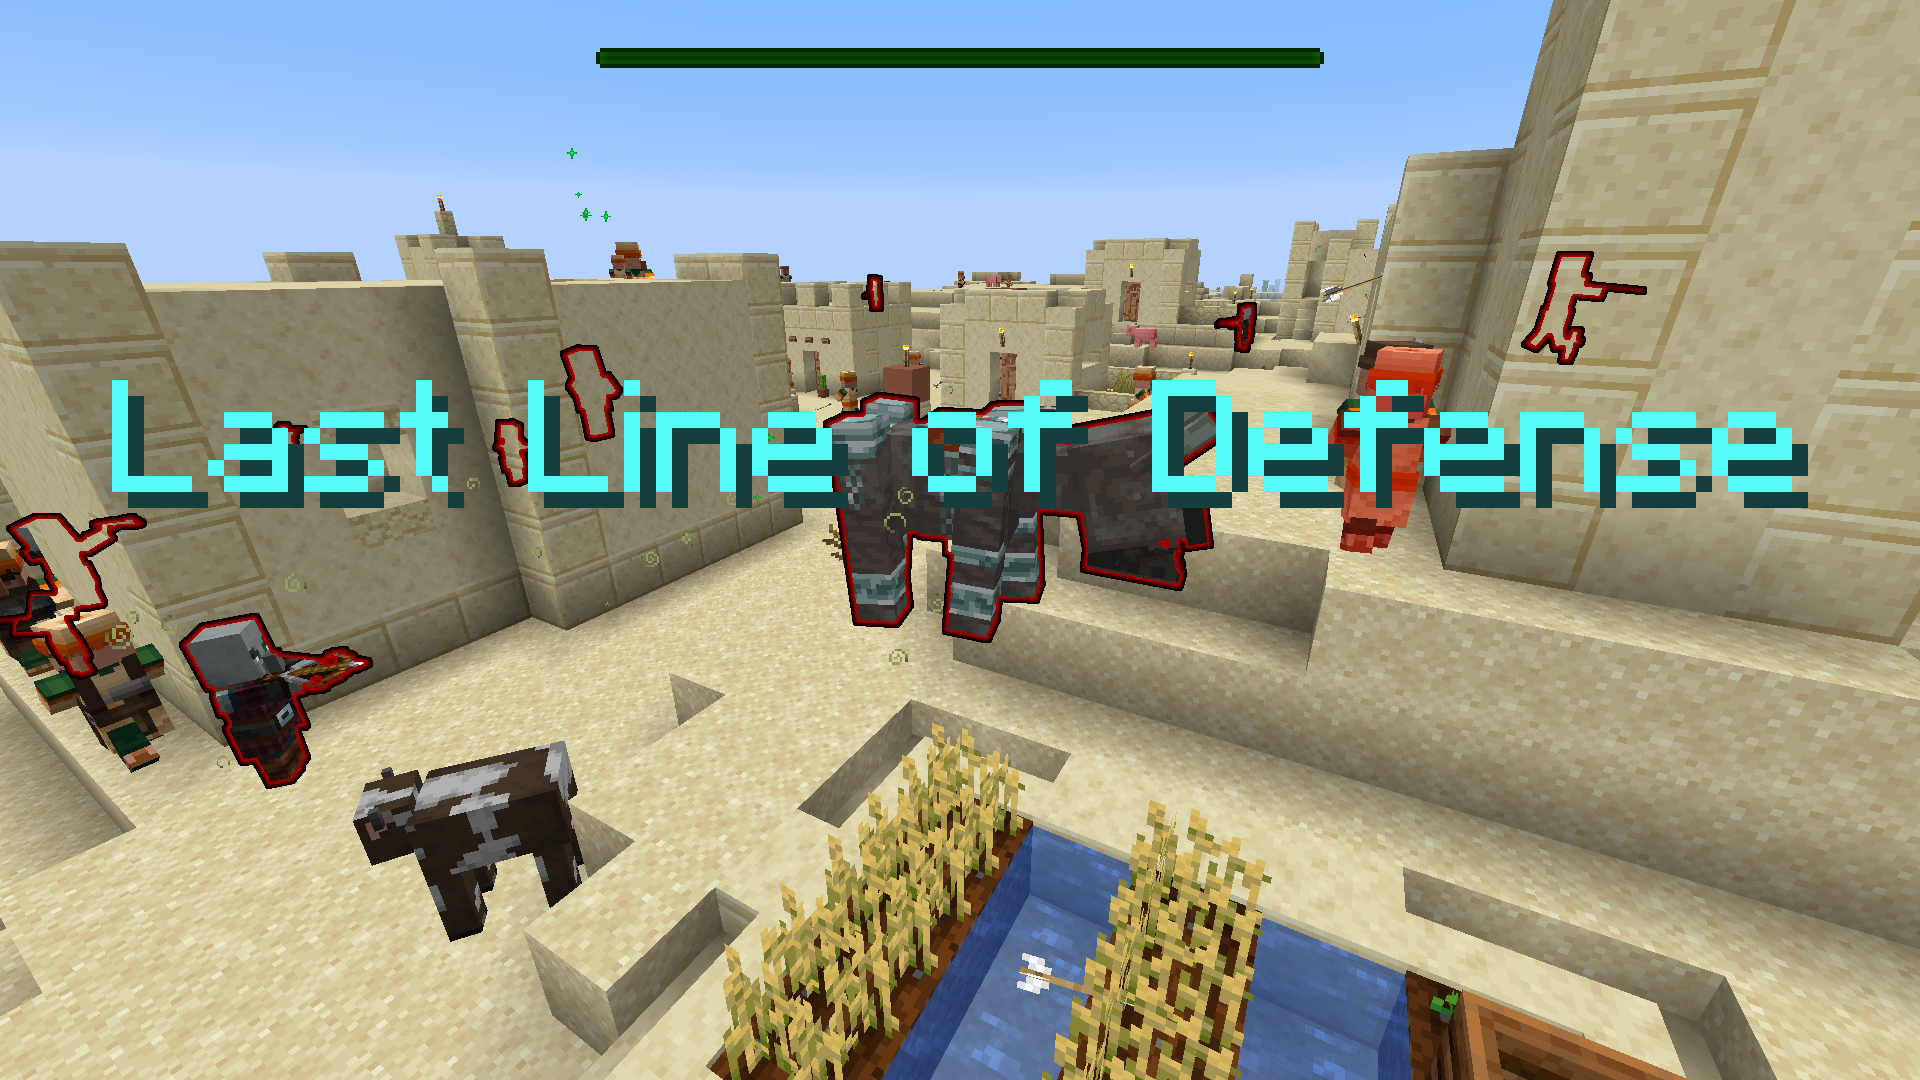 Download Last Line of Defense for Minecraft 1.16.5